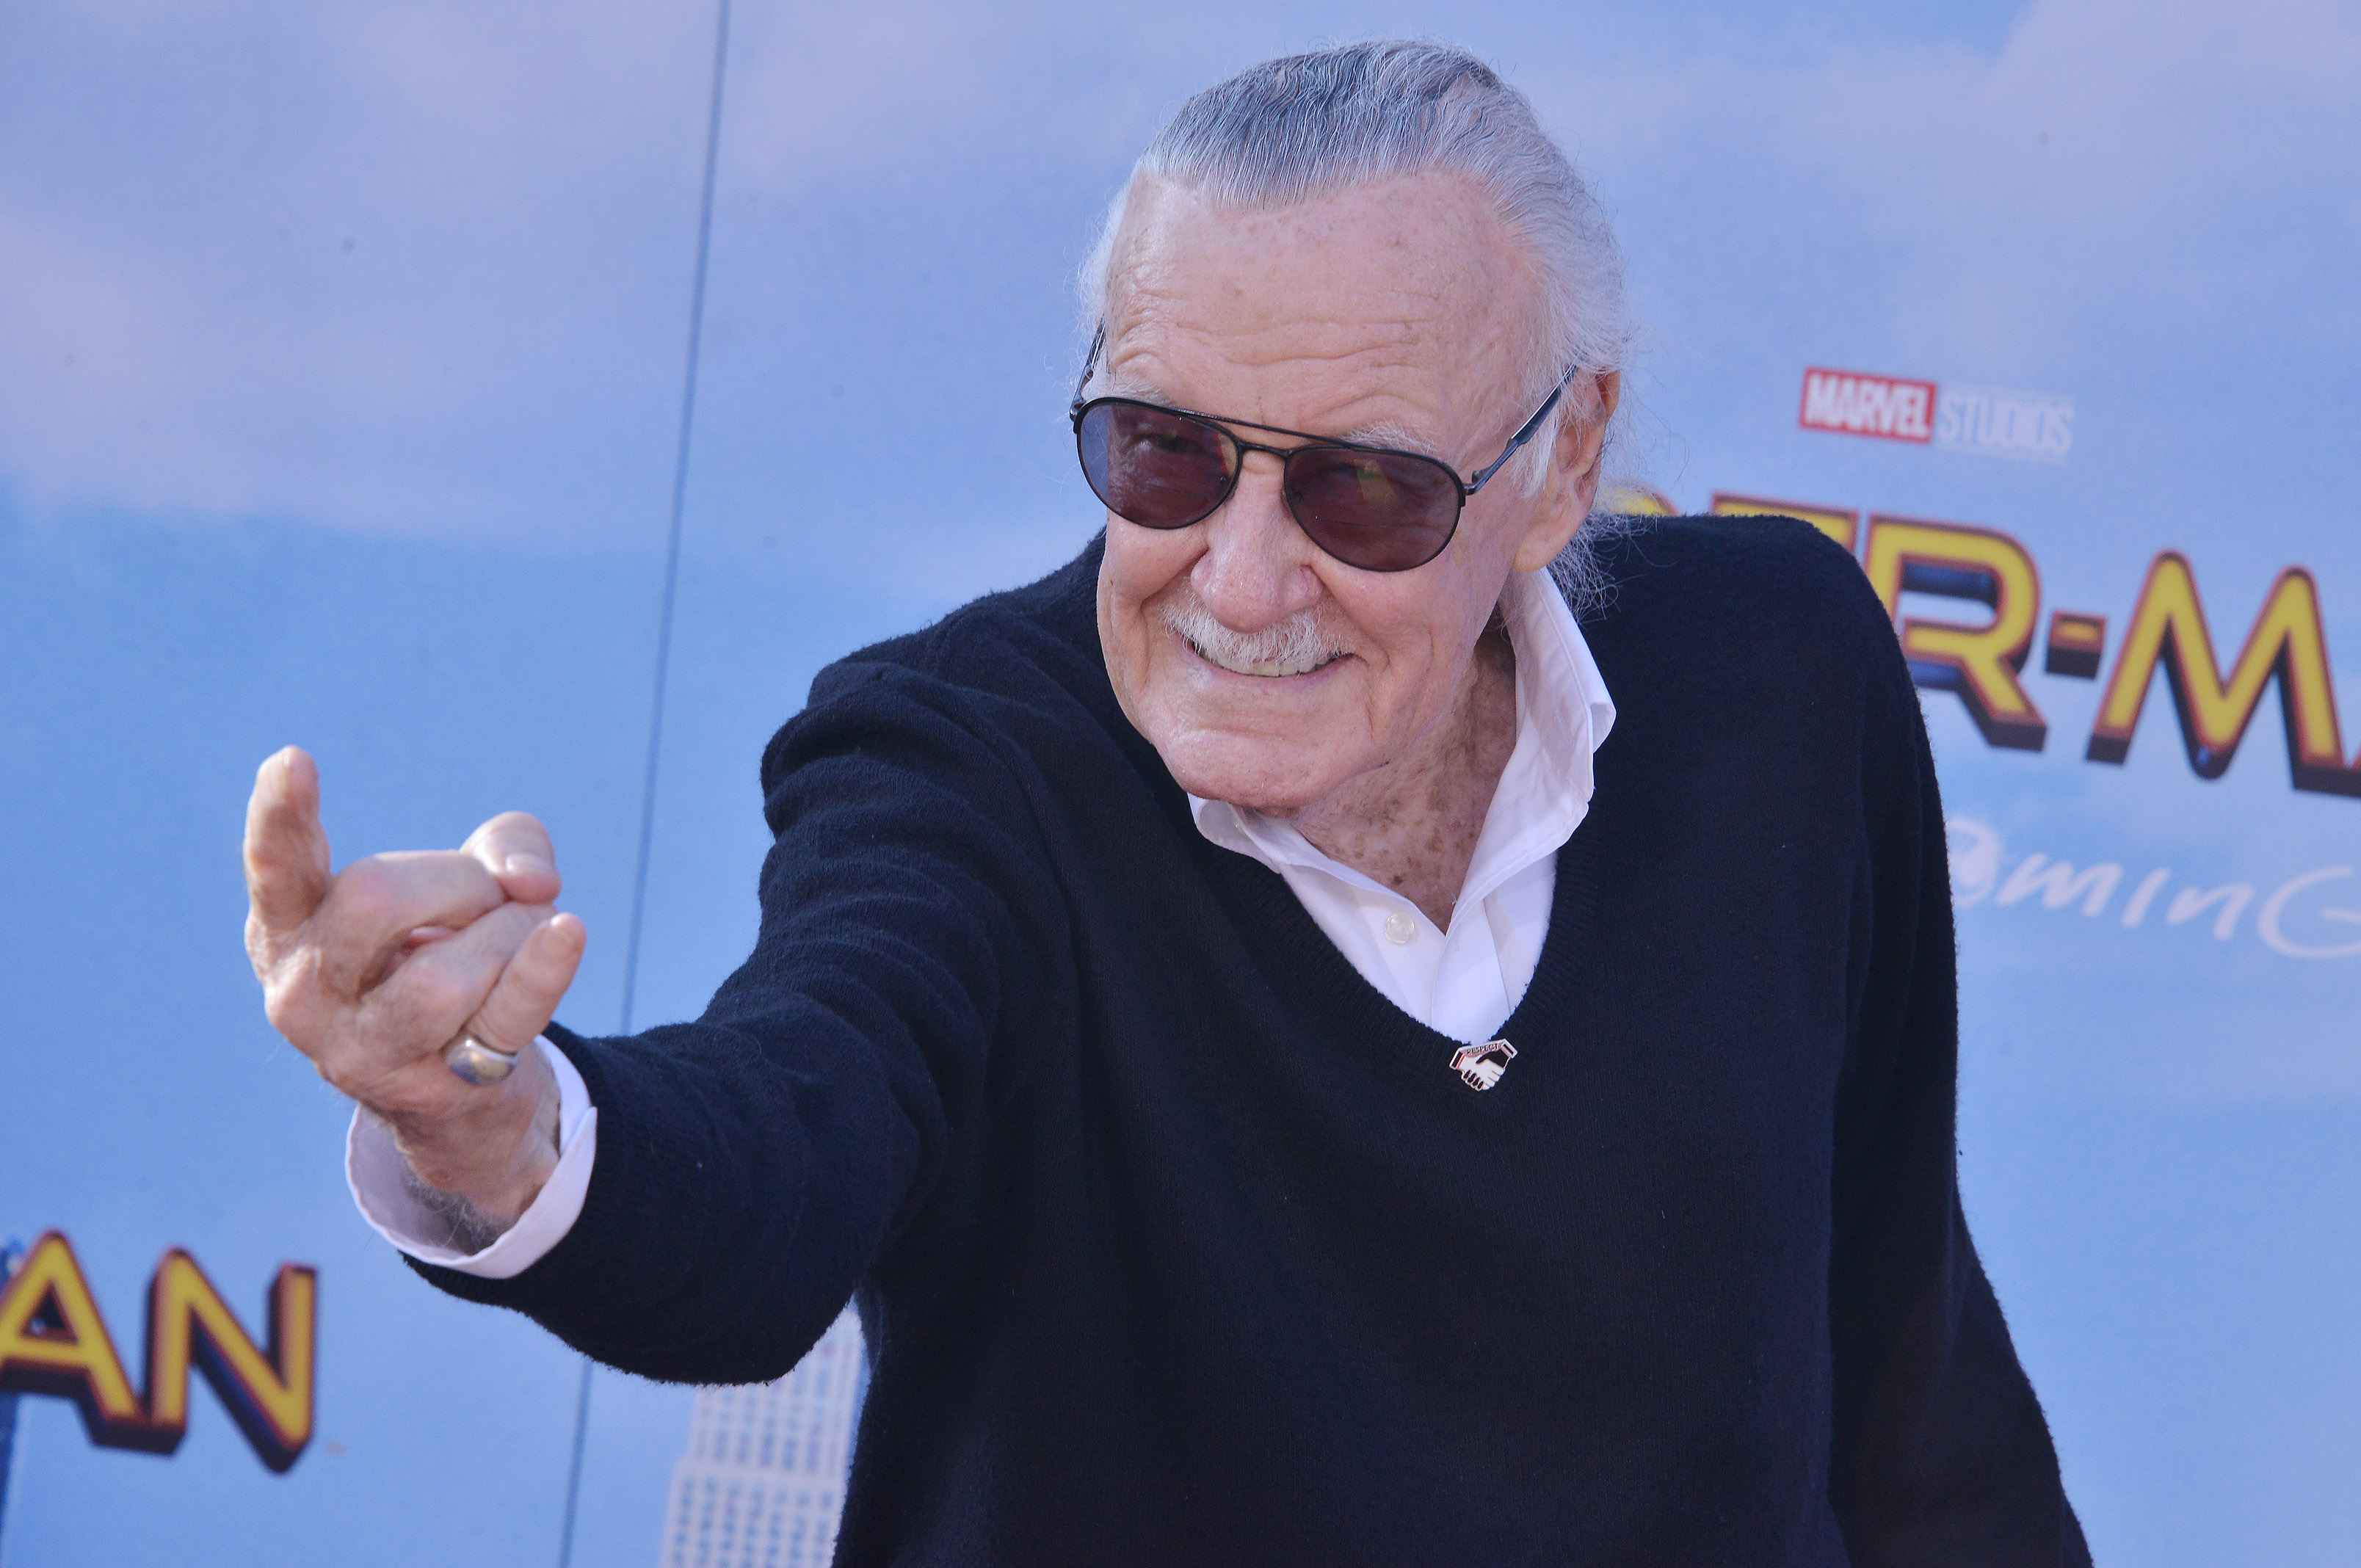 Marvel's Stan Lee, who has died aged 95. Credit: PA